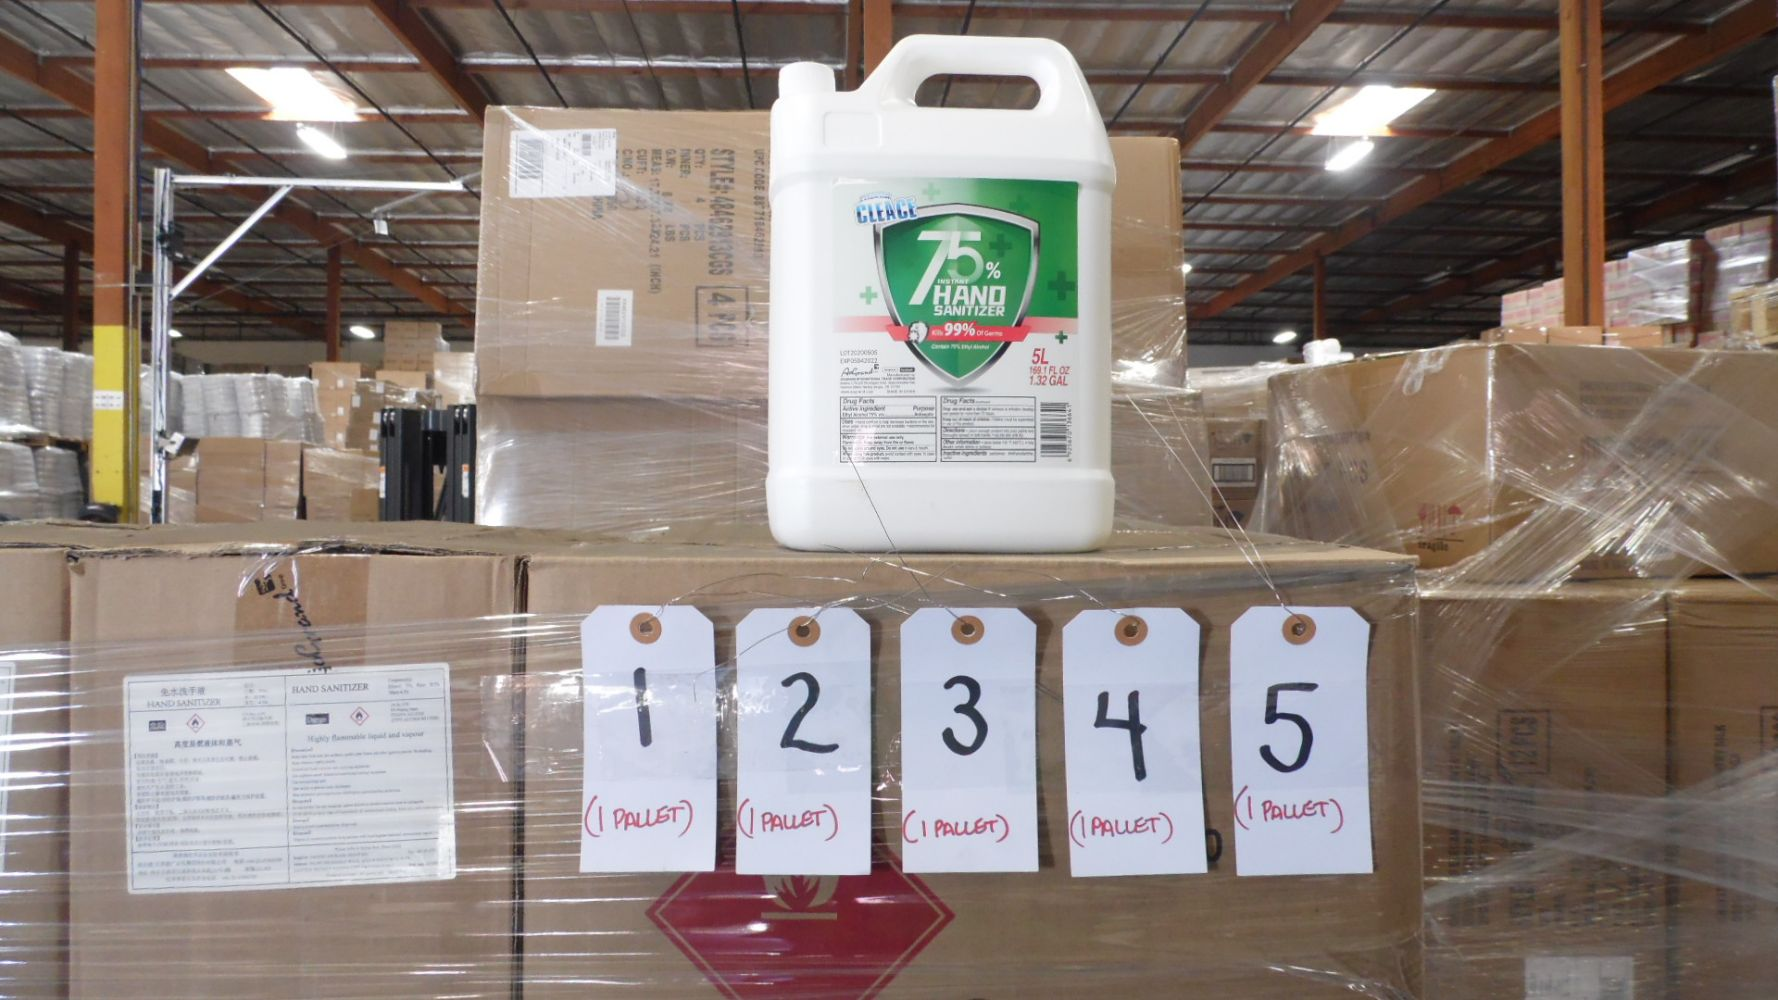 Hand Santizer Wipes, Disenfectant Spray - By the Pallet